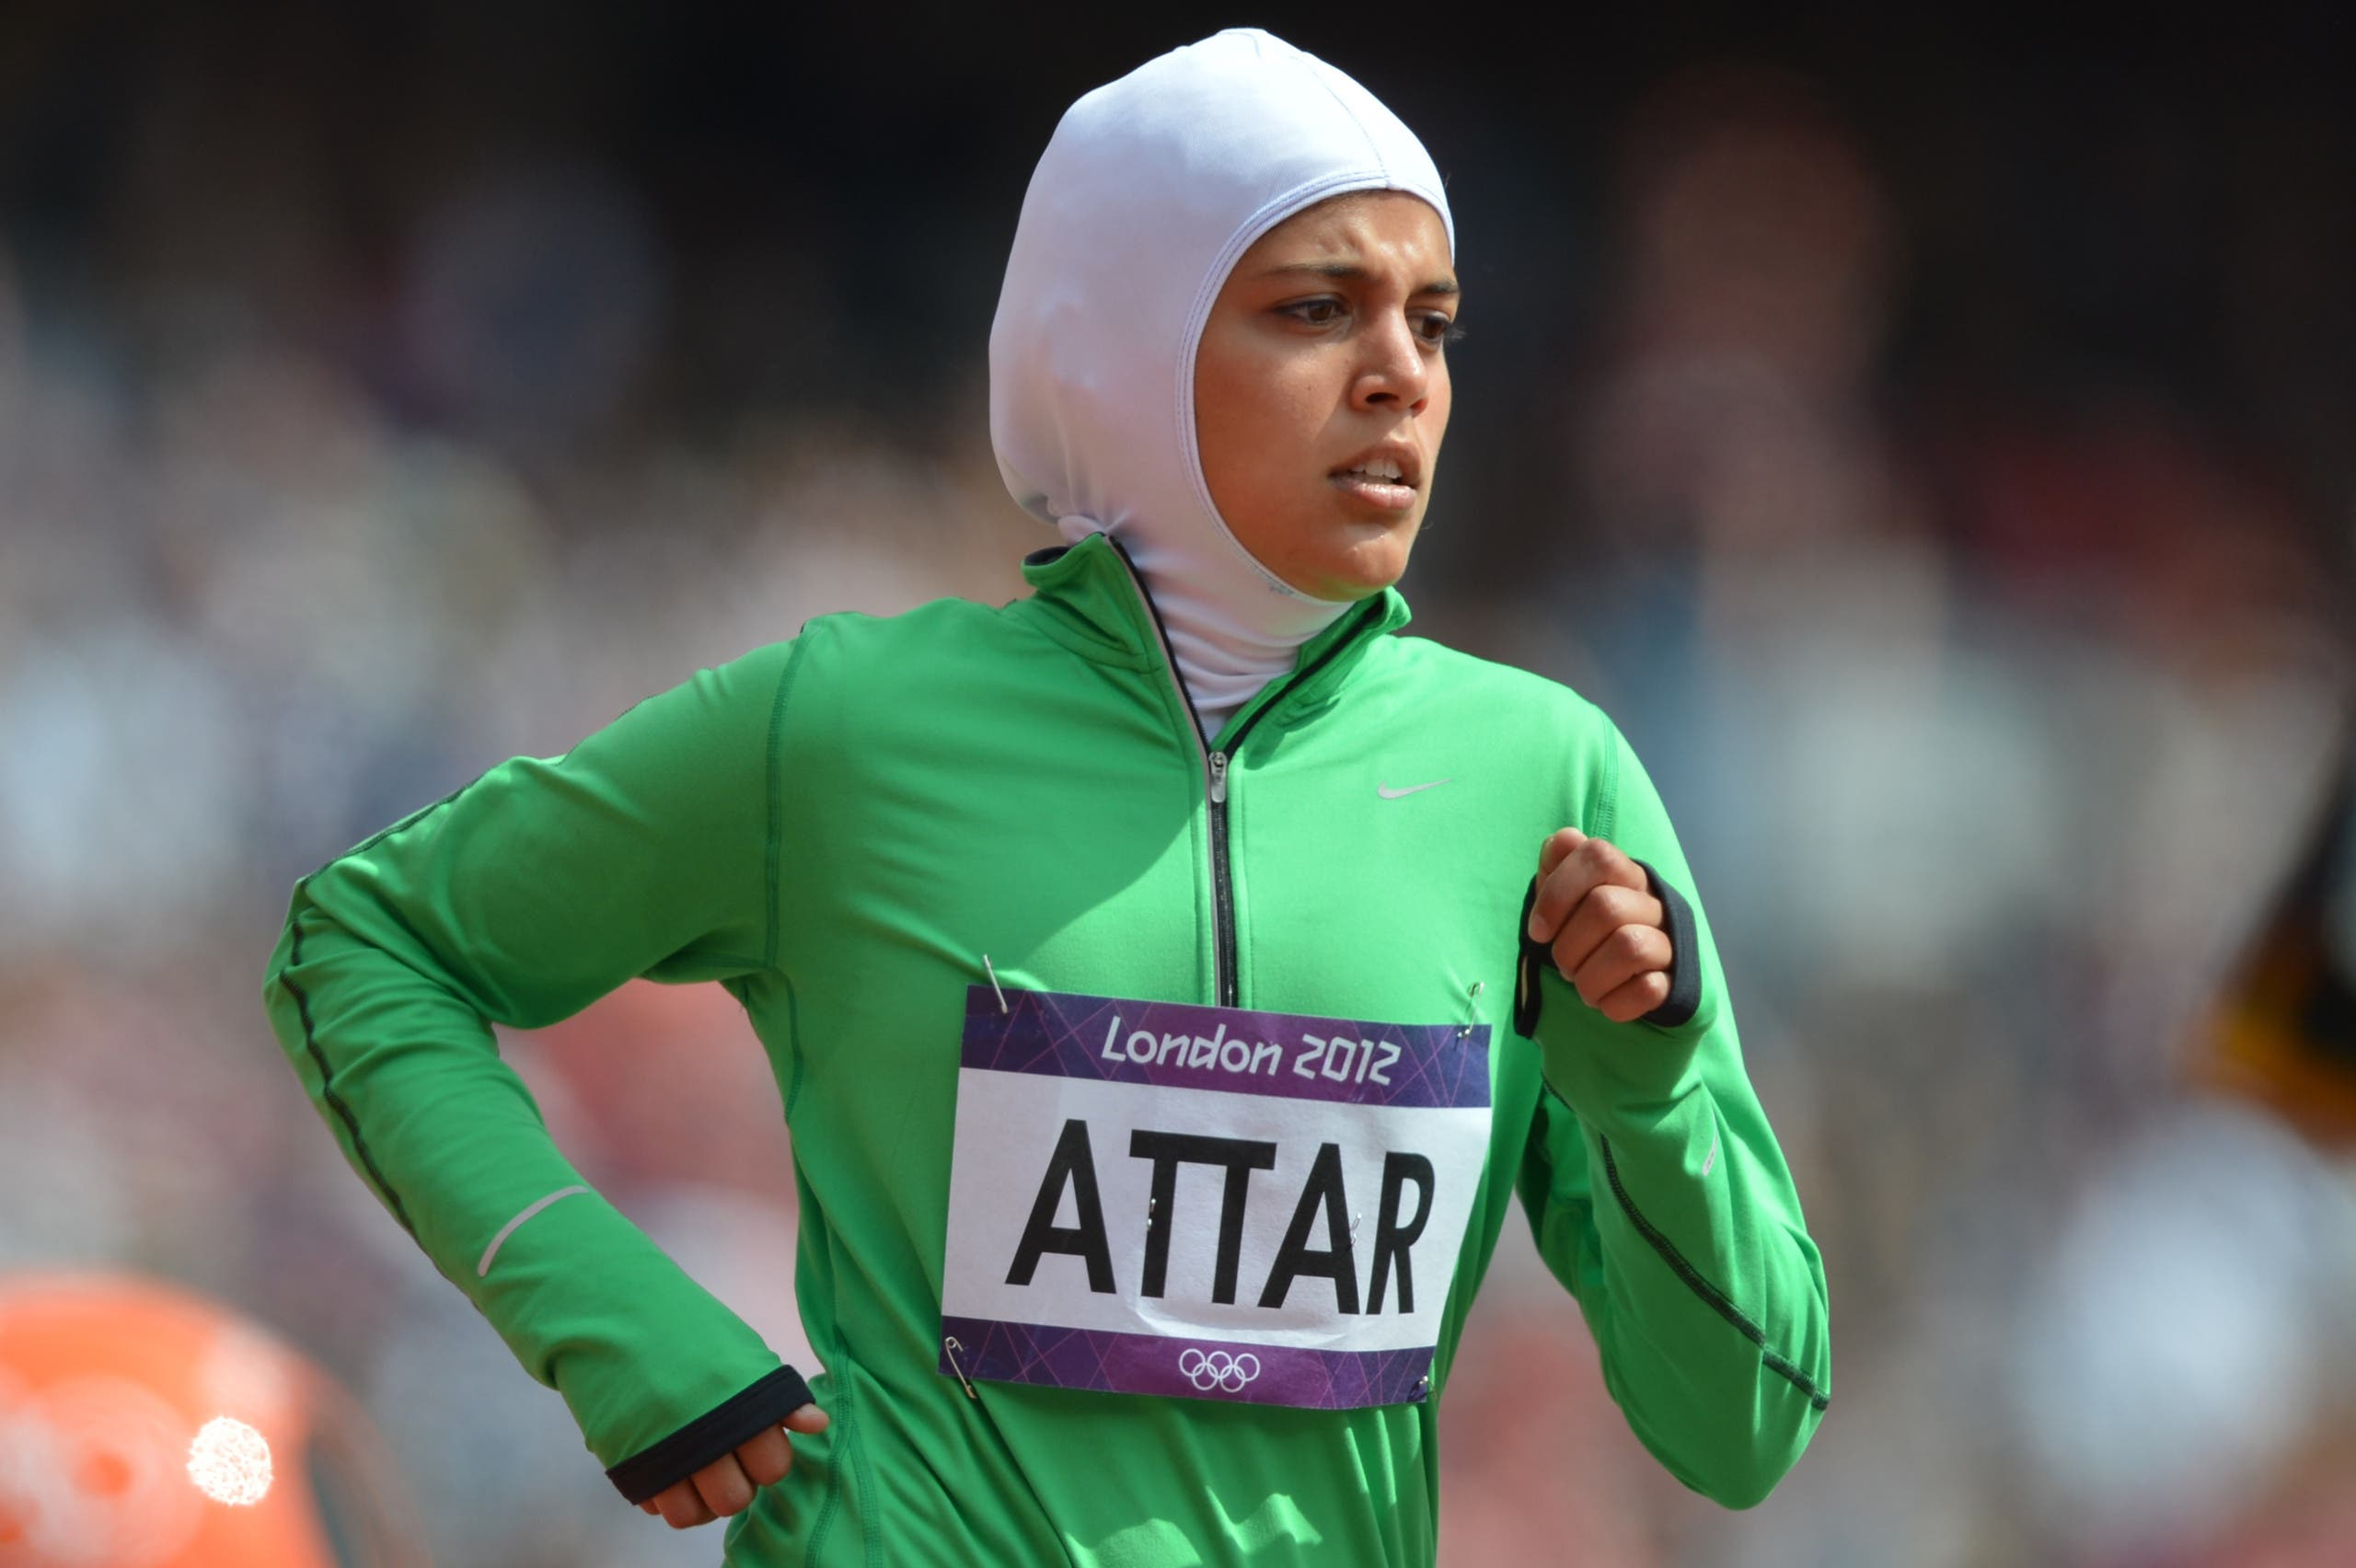 Saudi Arabia's Sarah Attar competes in the women's 800m heats at the athletics event of the London 2012 Olympic Games on August 8, 2012 in London. AFP